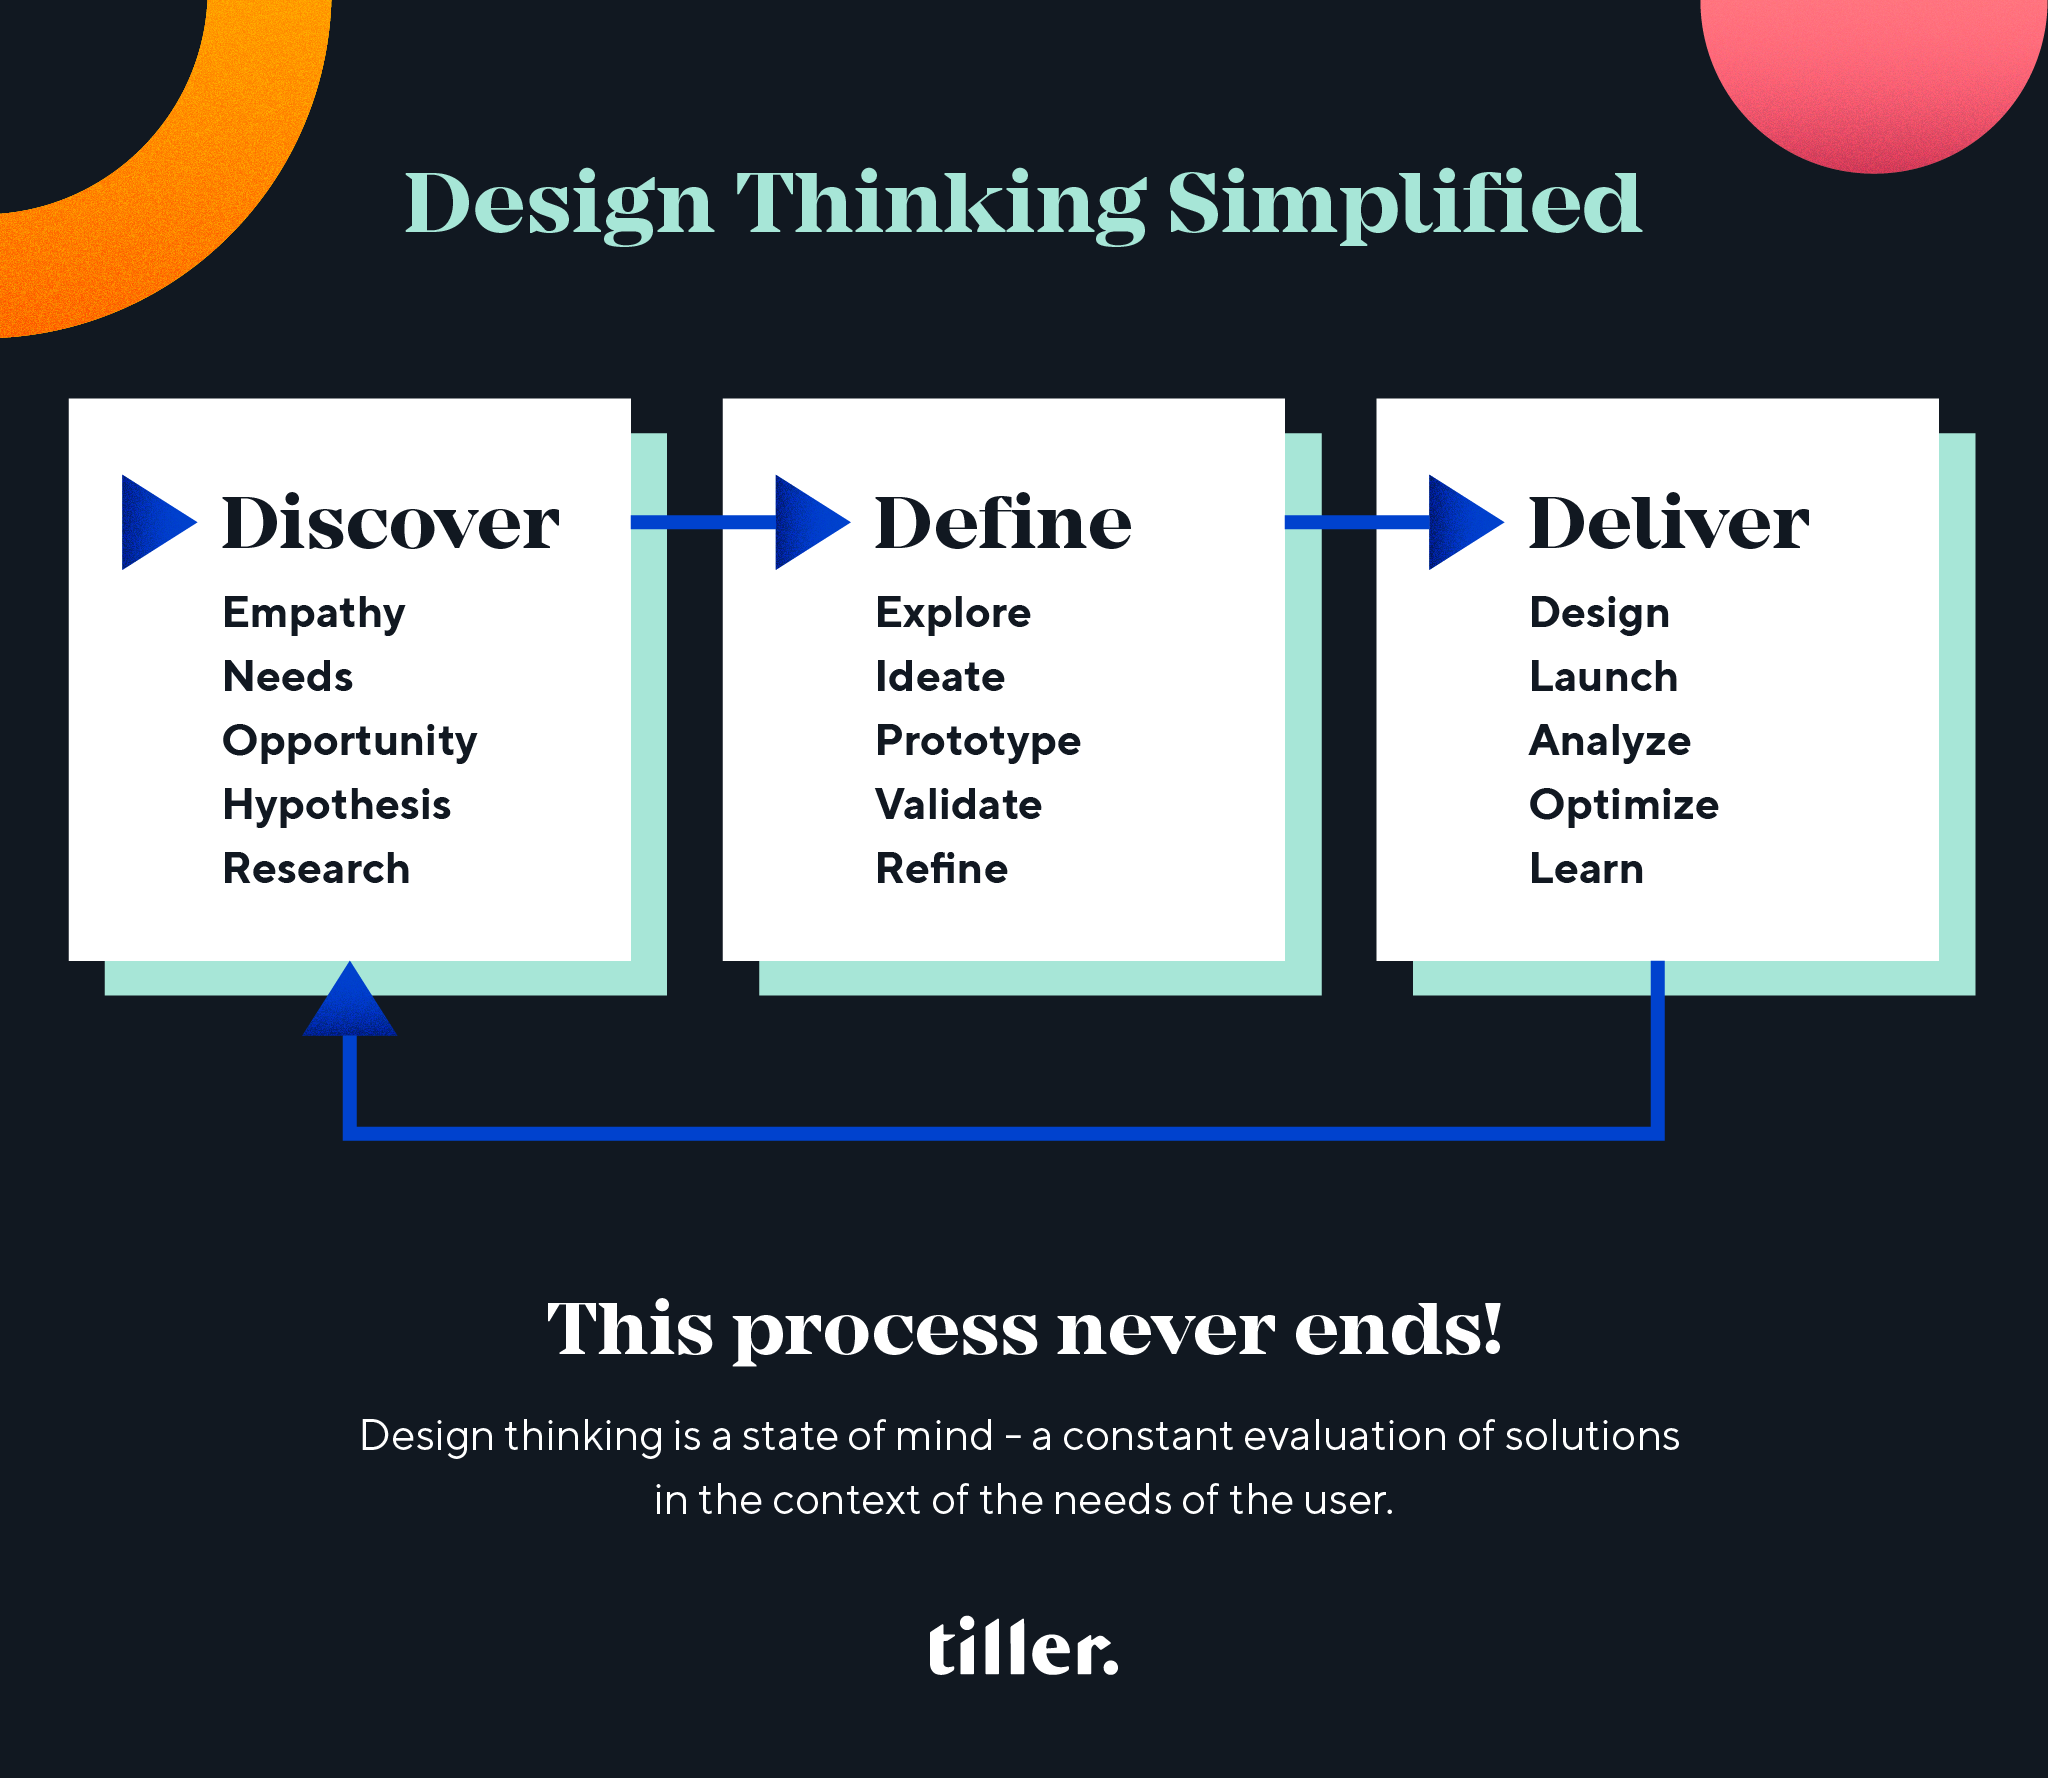 Graphic showing high-level design thinking